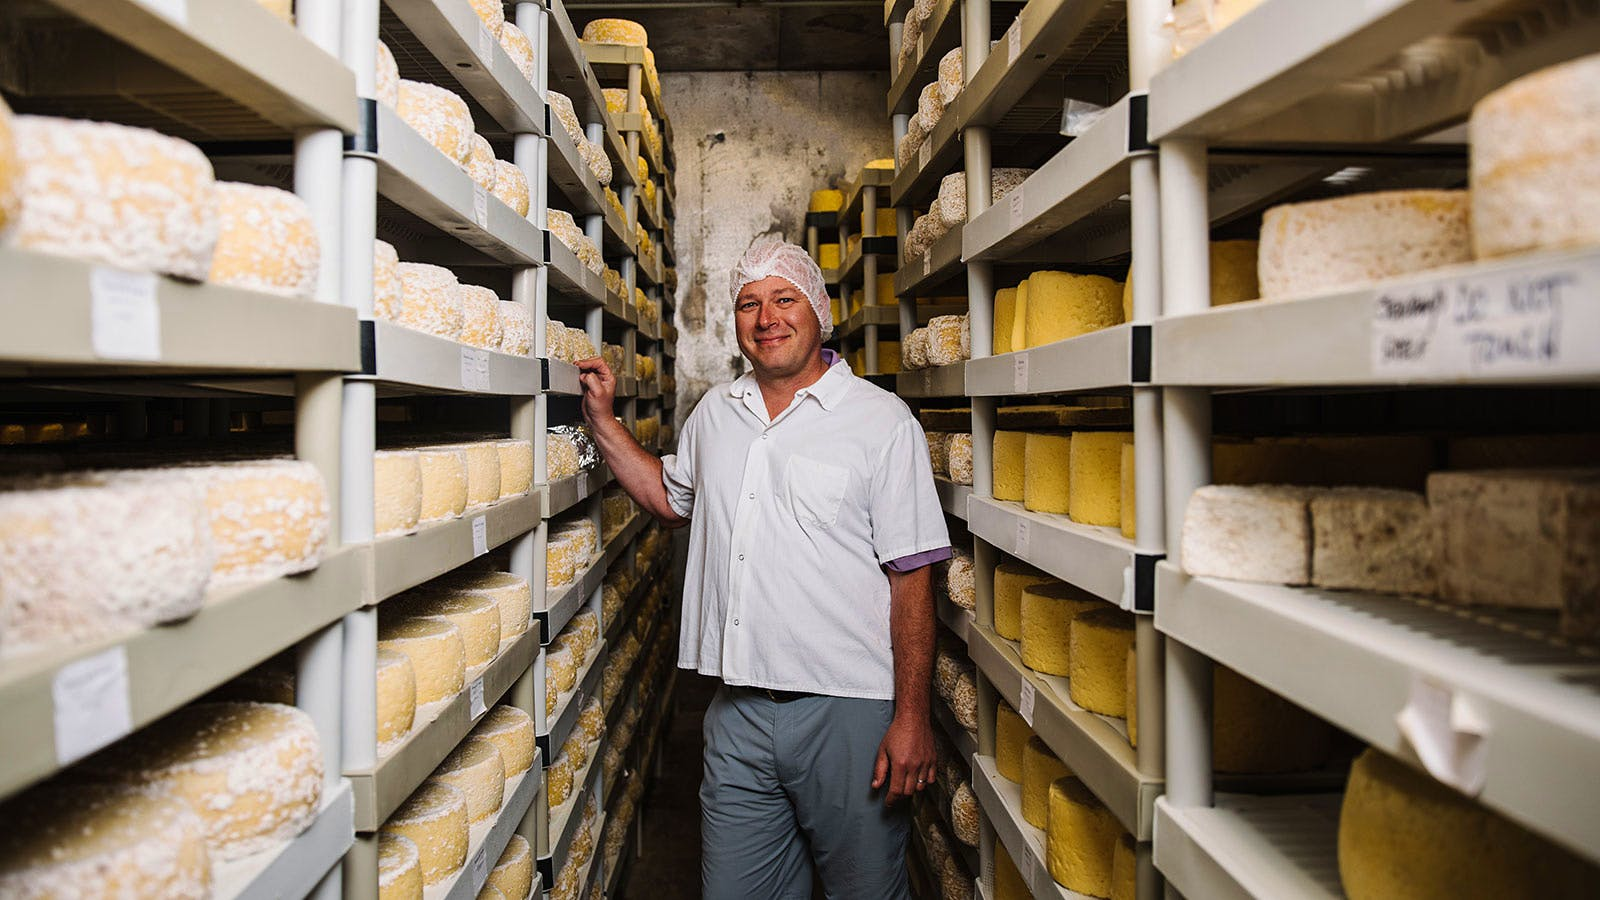 America's Artisan Cheesemakers Are in Trouble